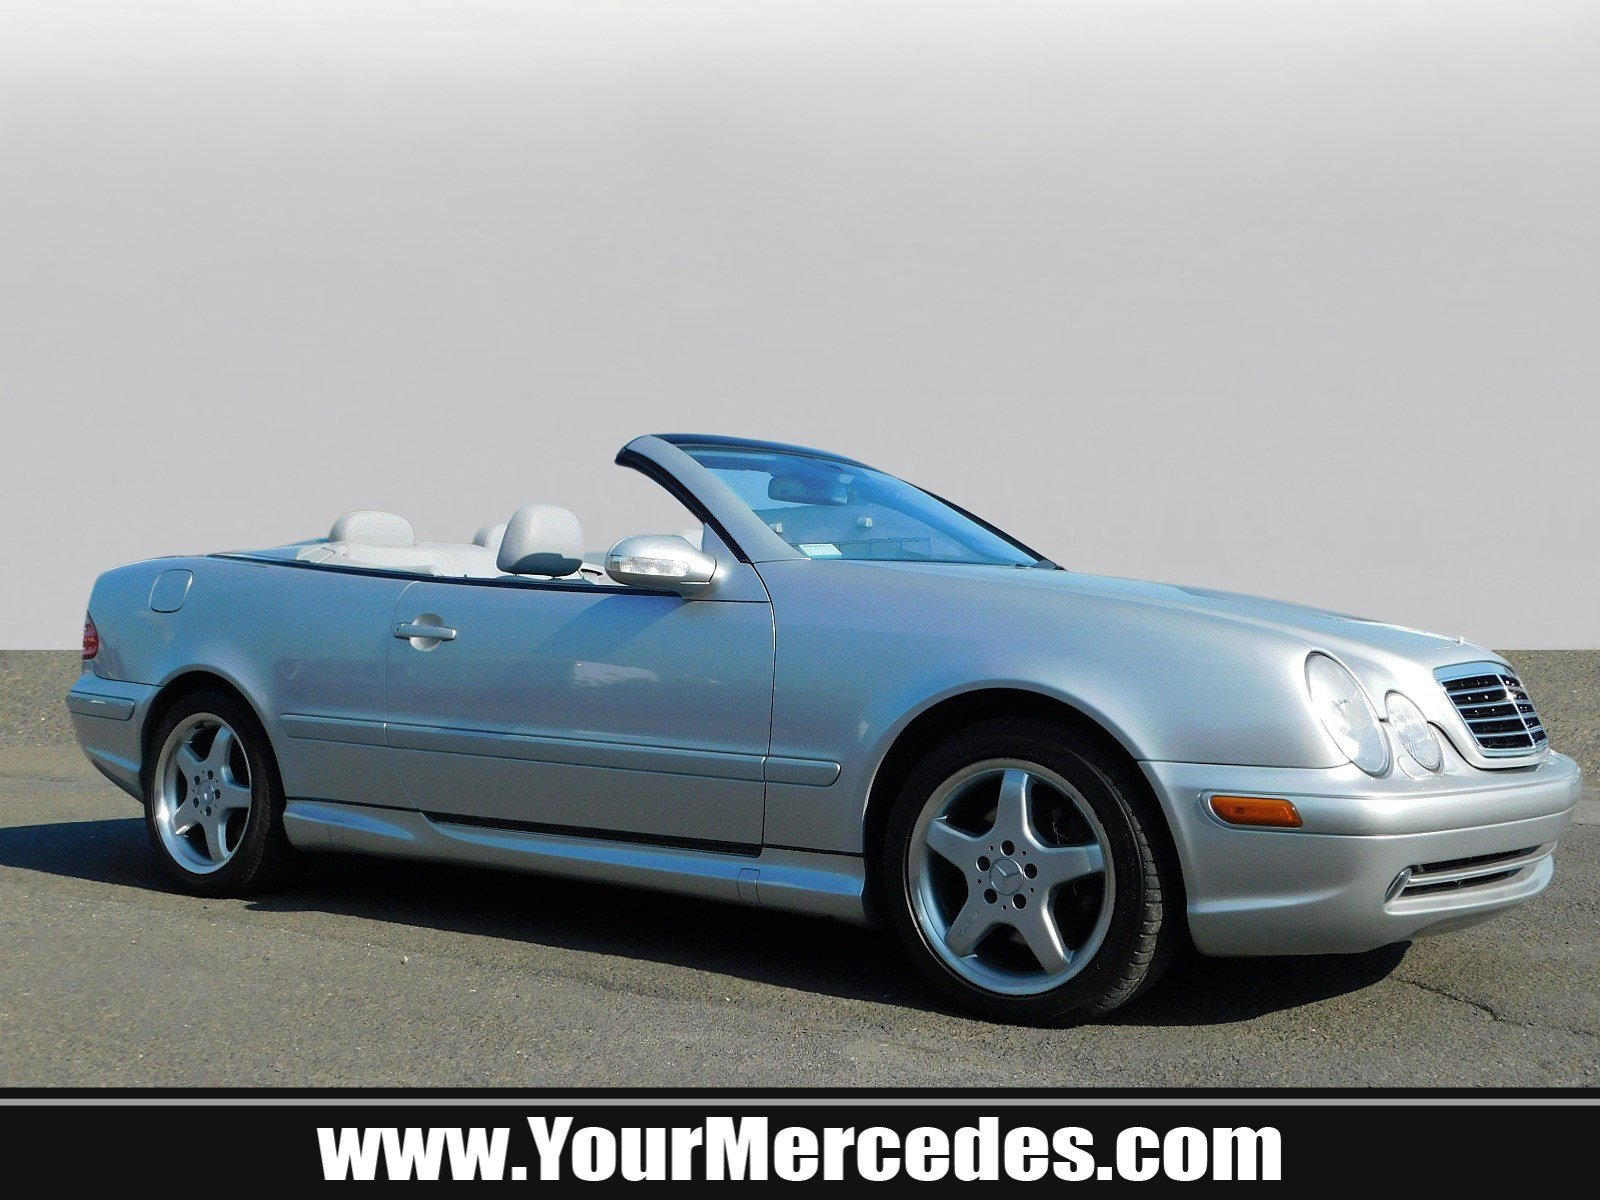 Pre Owned 2003 Mercedes Benz CLK CLK 430 2D Convertible in West